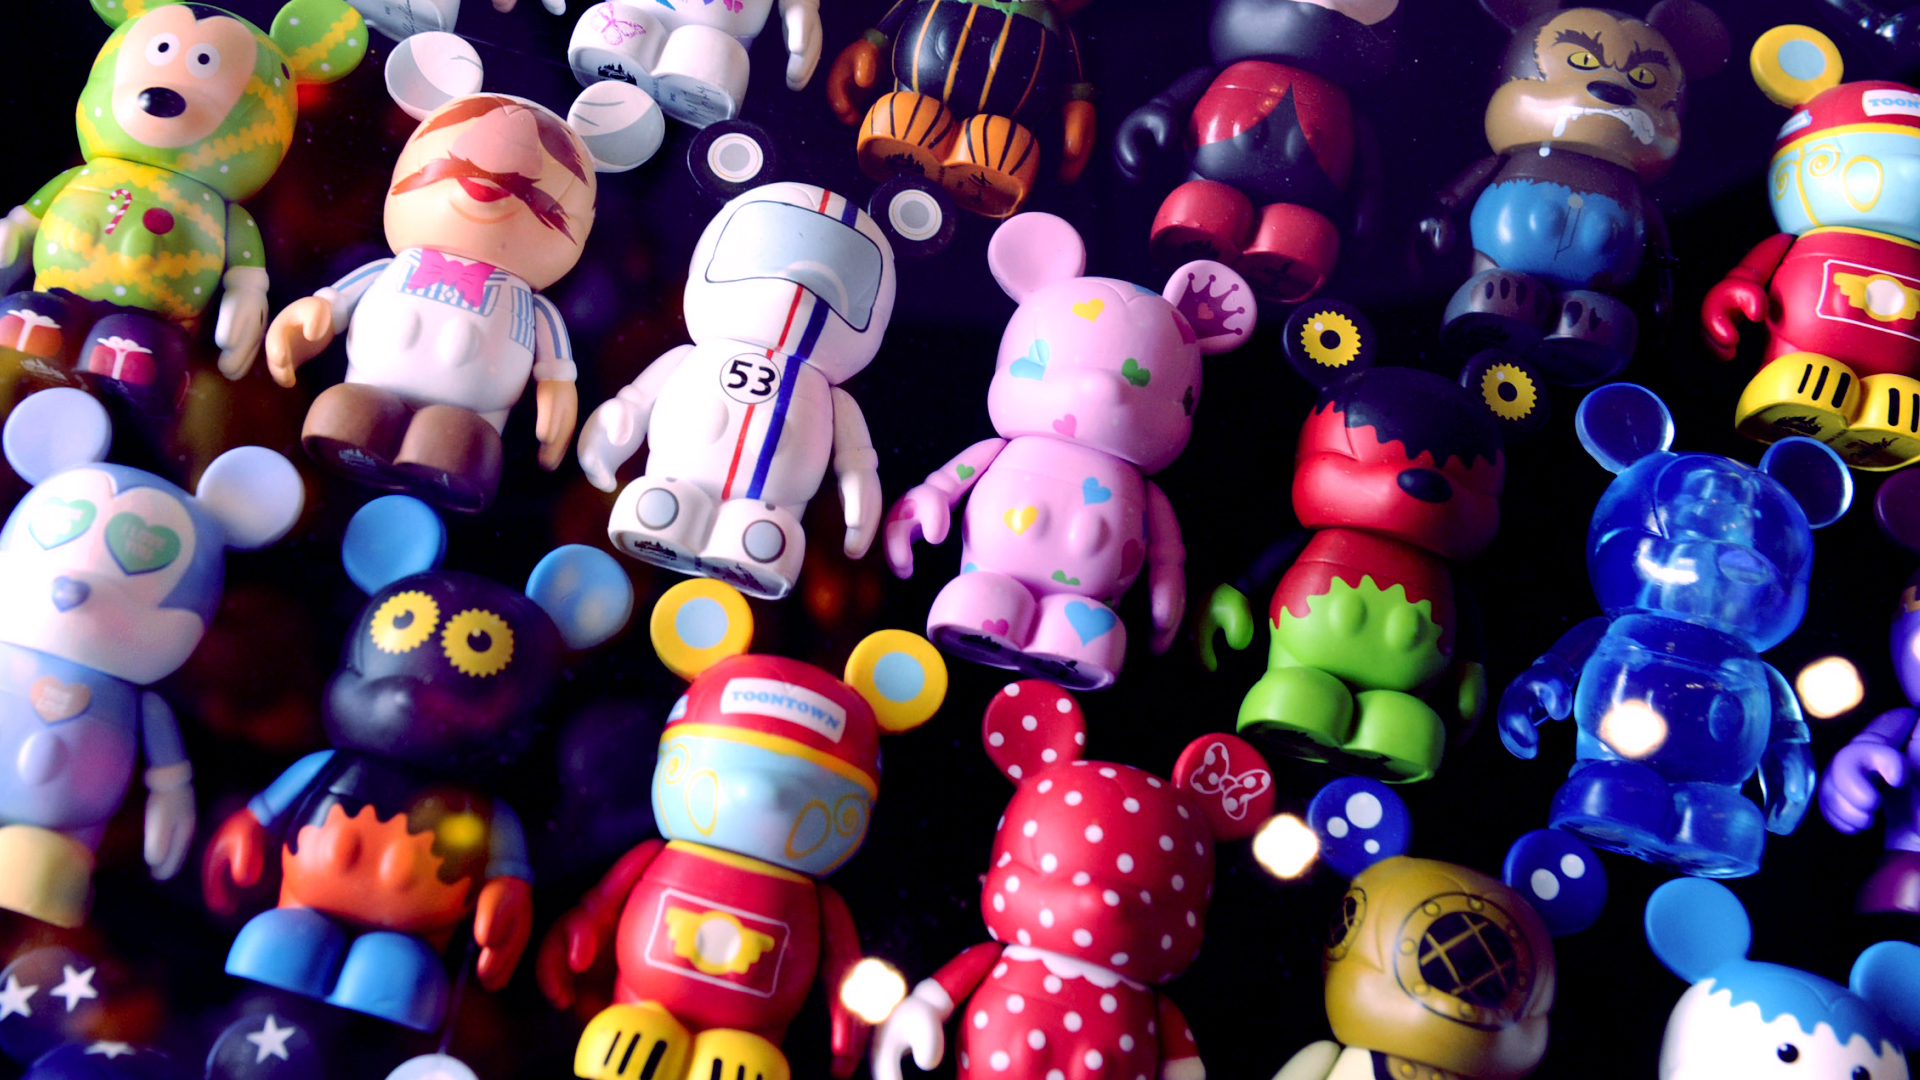 Toys Bearbricks Wallpaper 1920x1080 Toys, Bearbricks